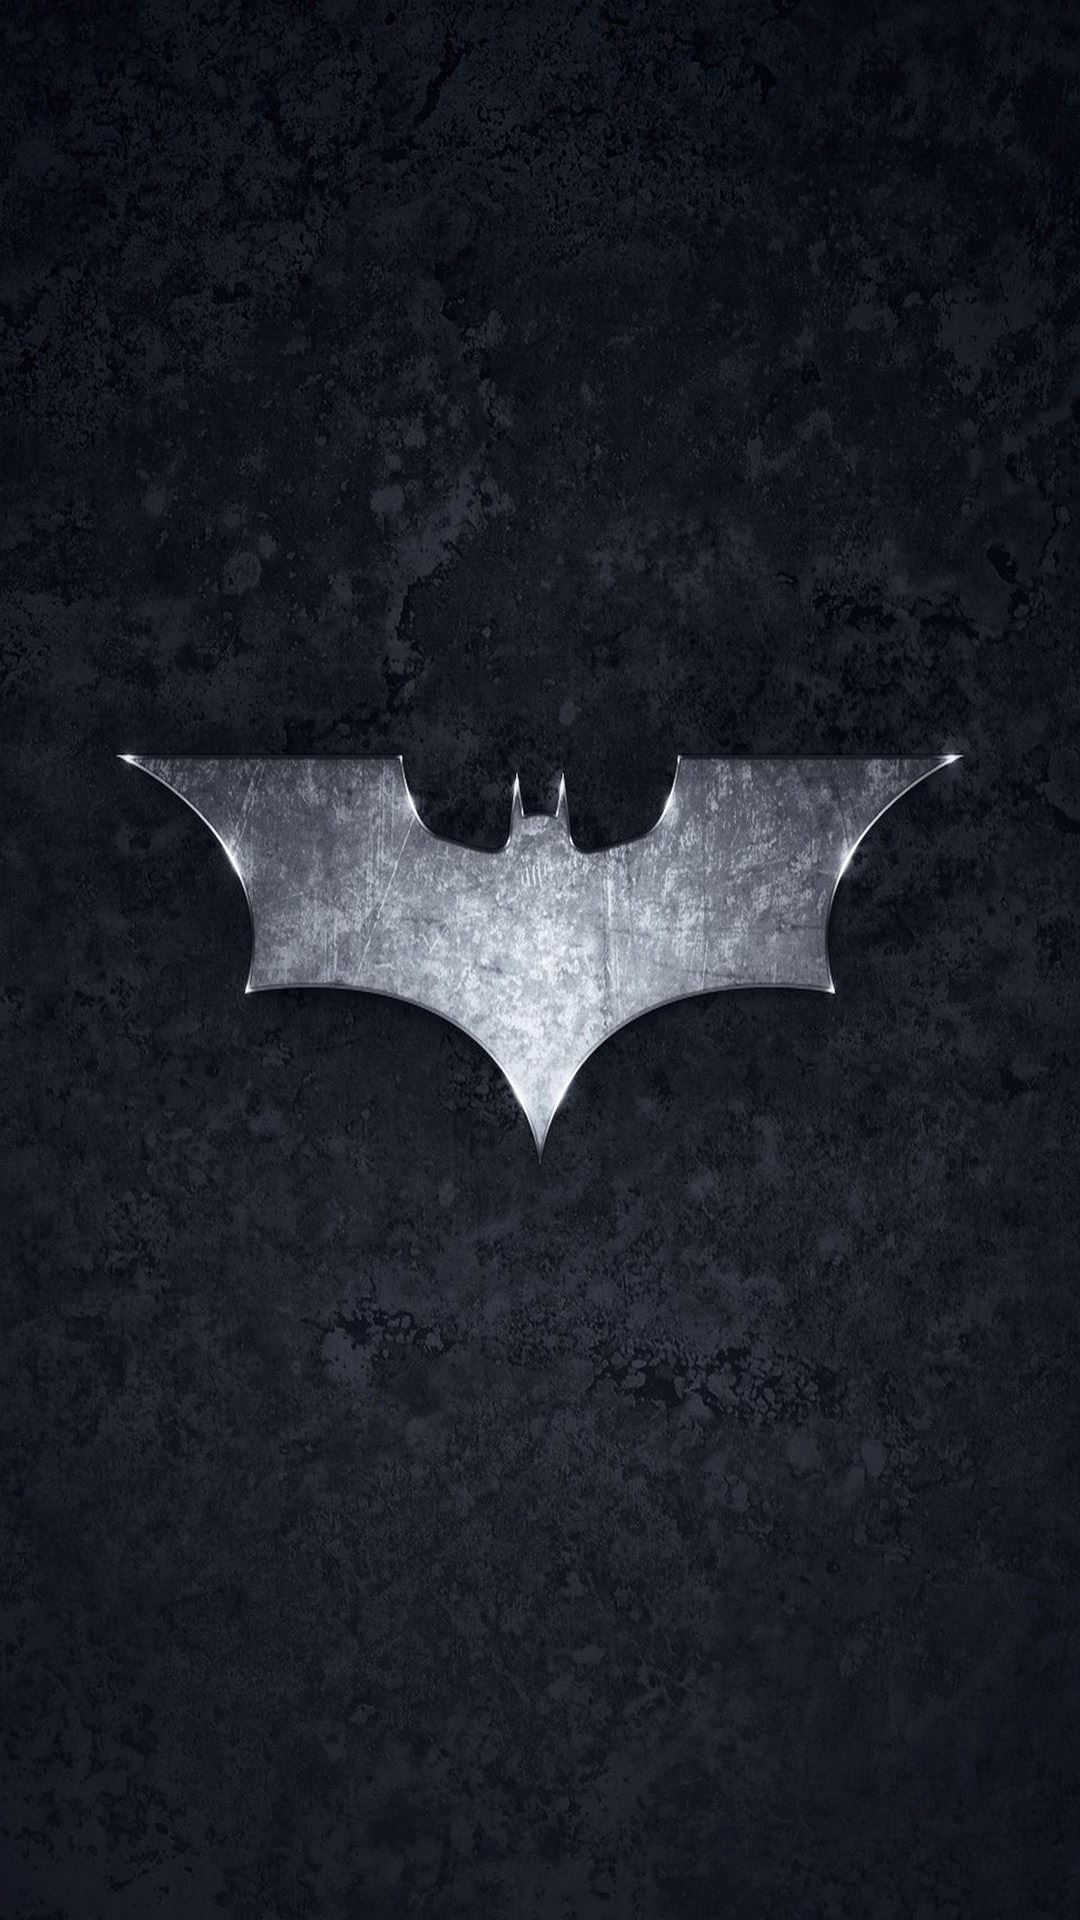 batman logo brushed metal android wallpaper free download